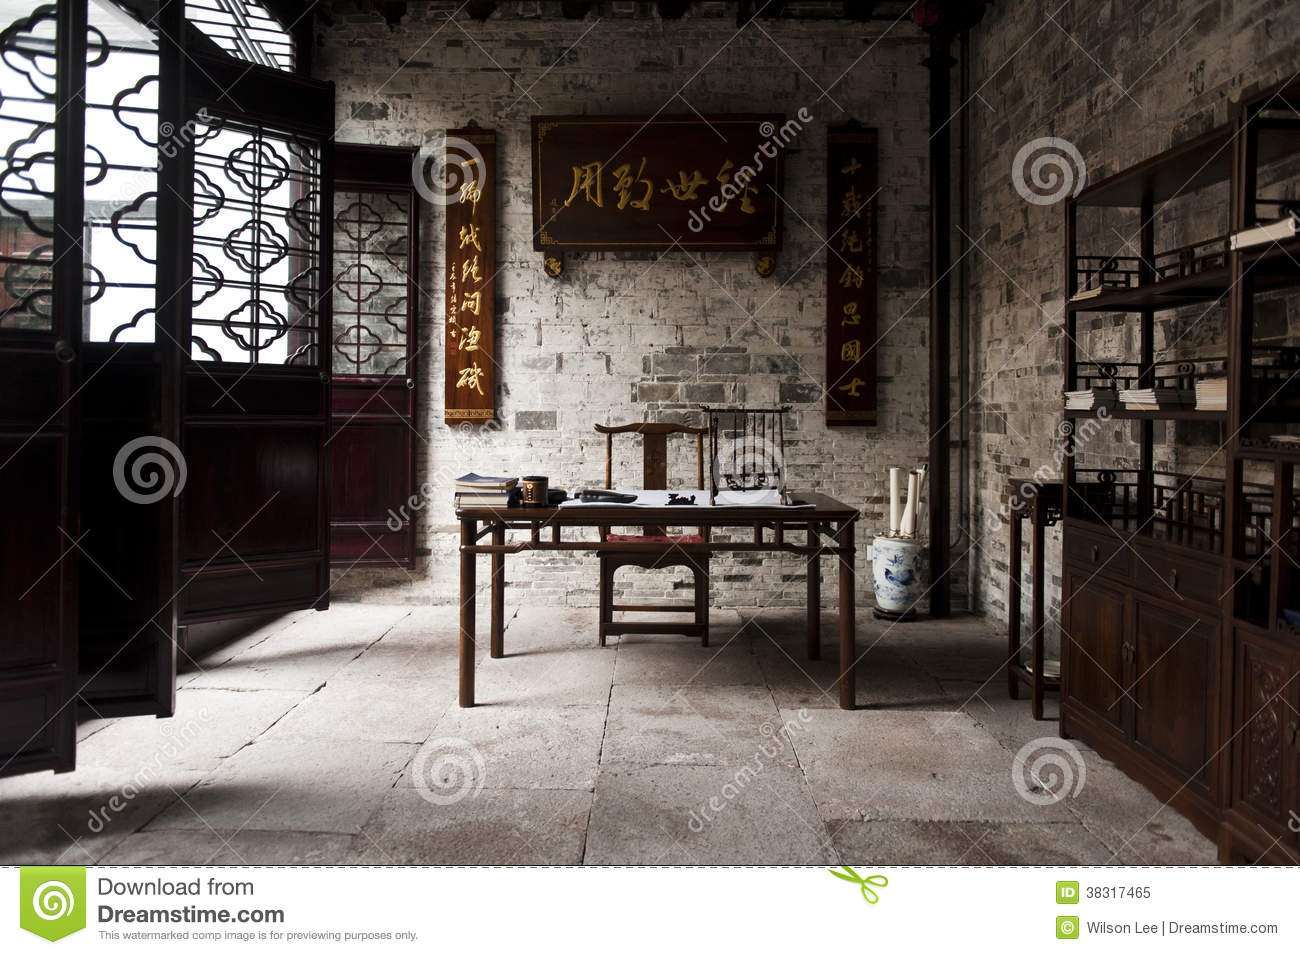 Traditional Chinese Study Room Royalty Free Stock Photo  Image 38317465